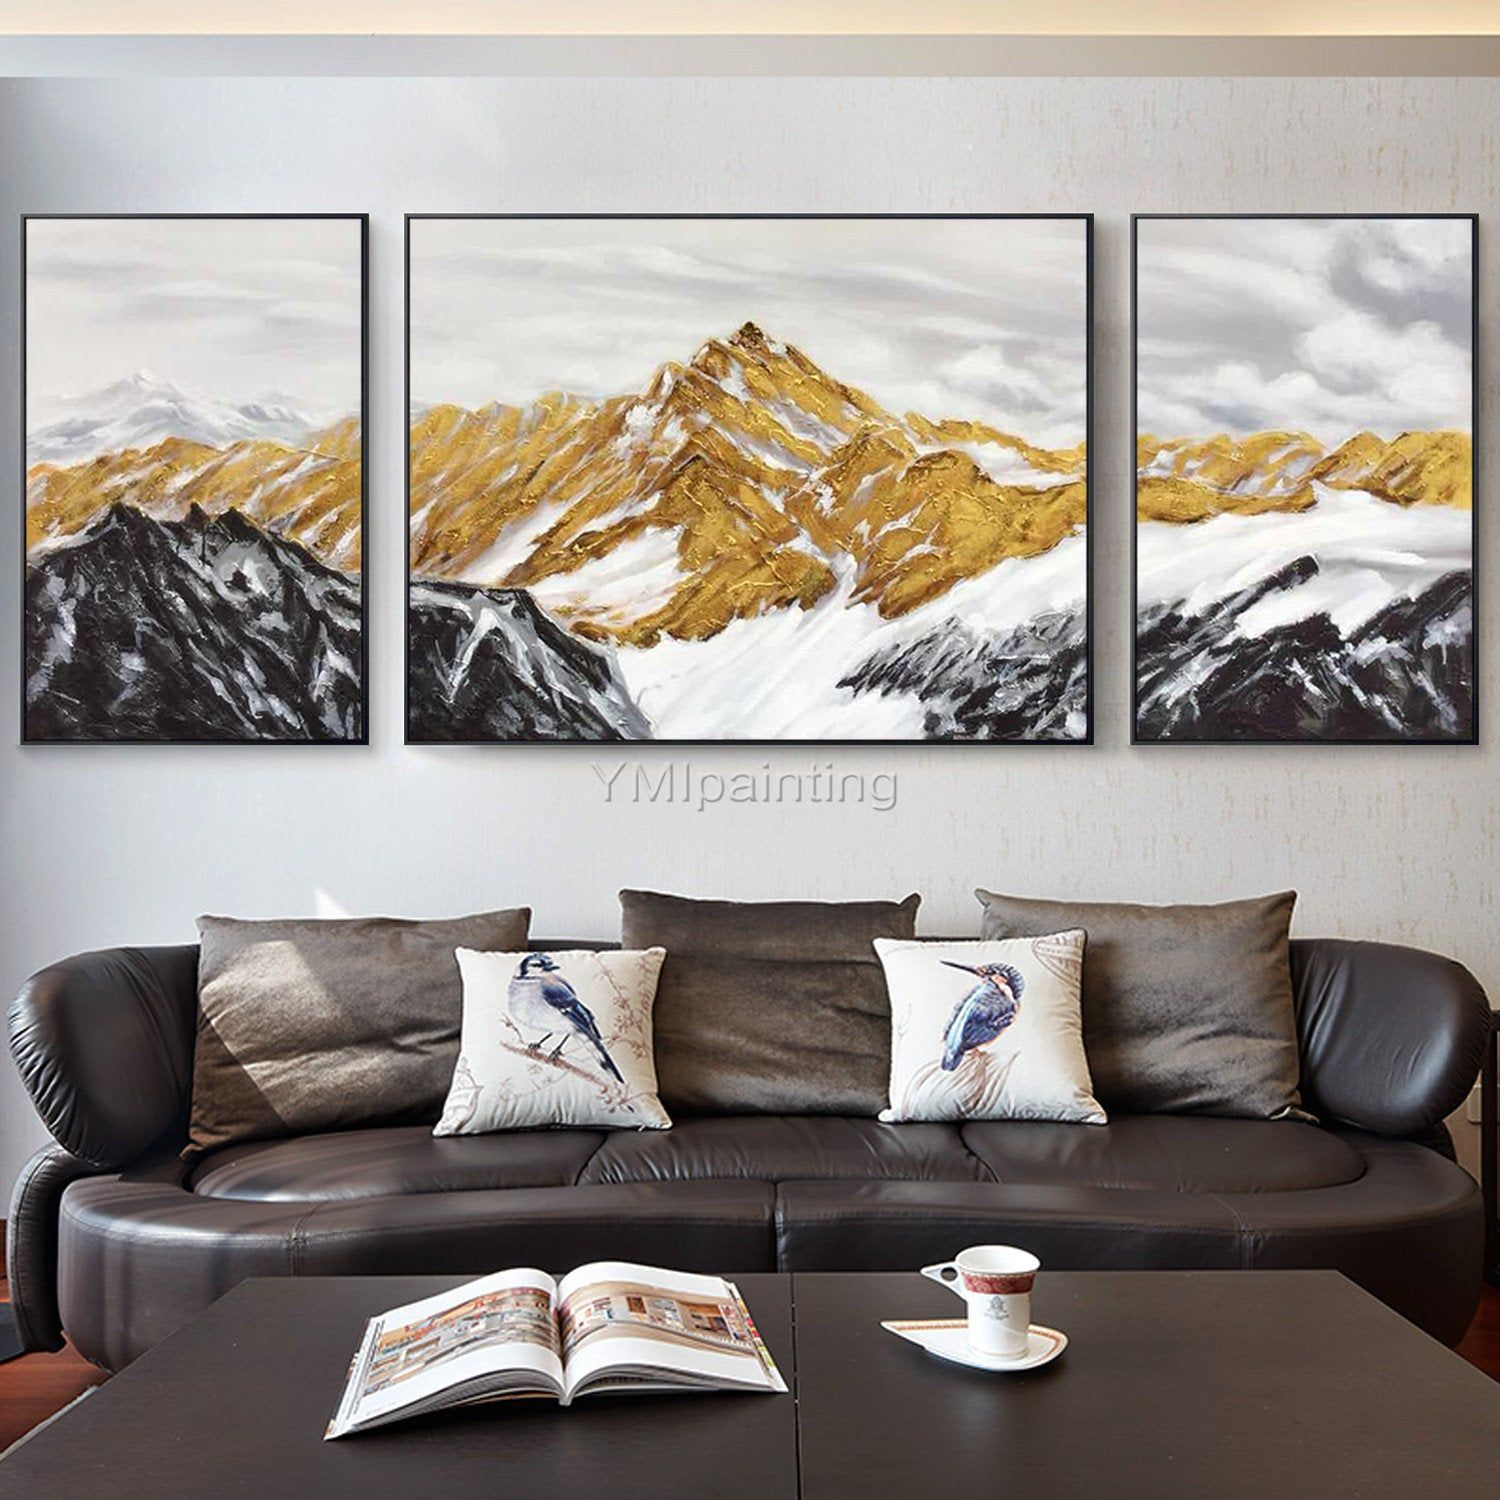 Set Of 2 Wall Art Mountain Peaks Modern Abstract Landscape Painting On Canvas Original Large Wall Art Gold Art Wall Picture Framed Wall Art In 2020 3 Piece Canvas Art Canvas